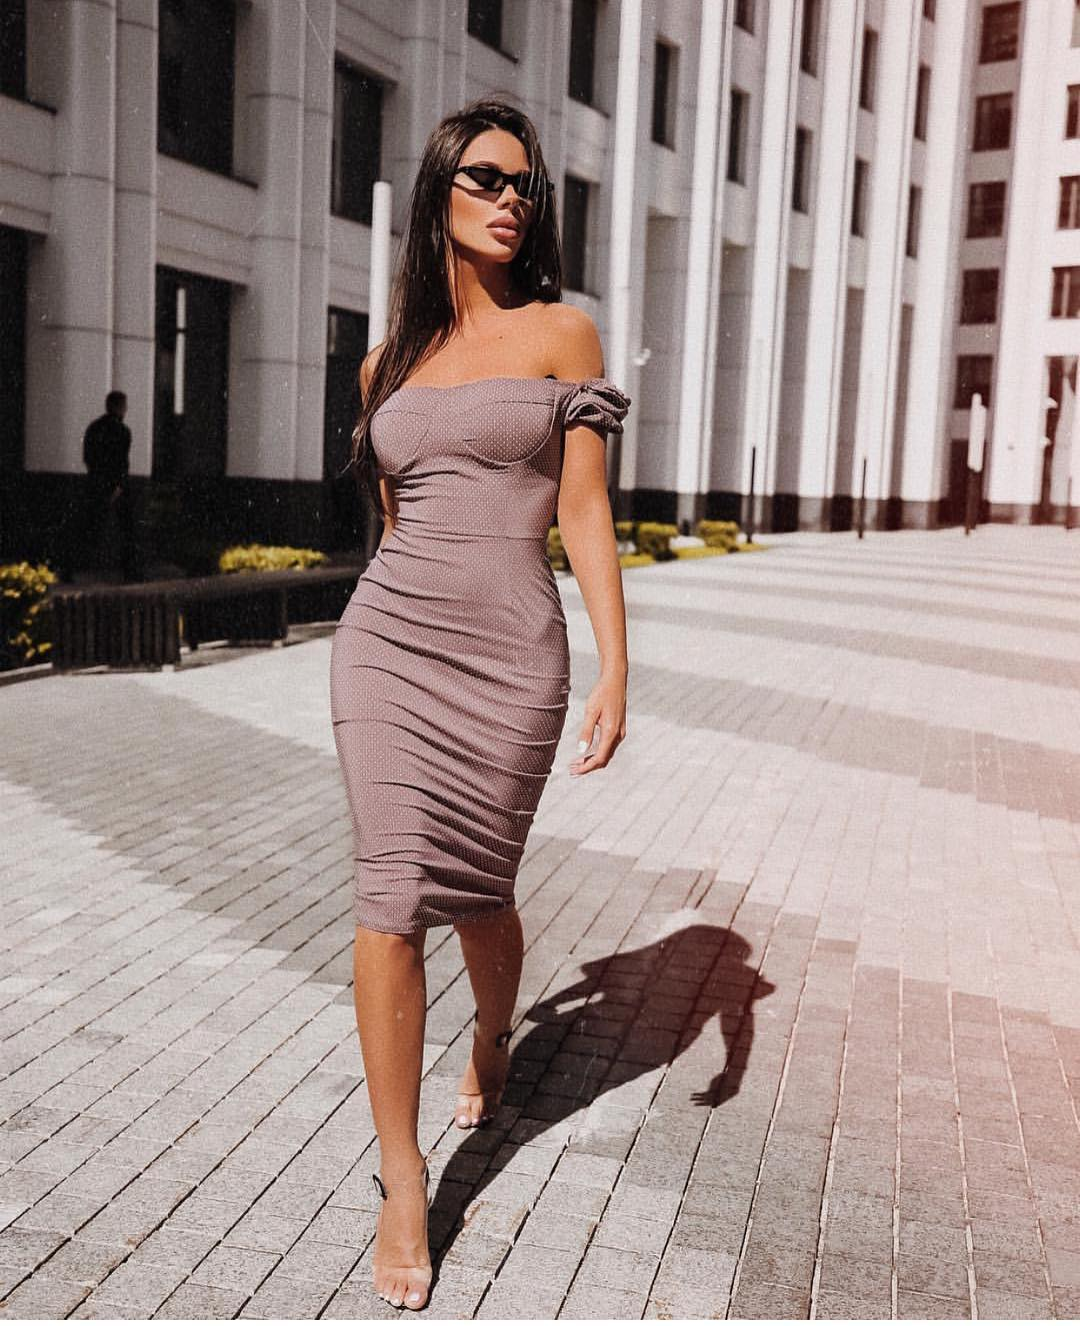 Strapless Bodycon Pencil Dress For Summer 2019